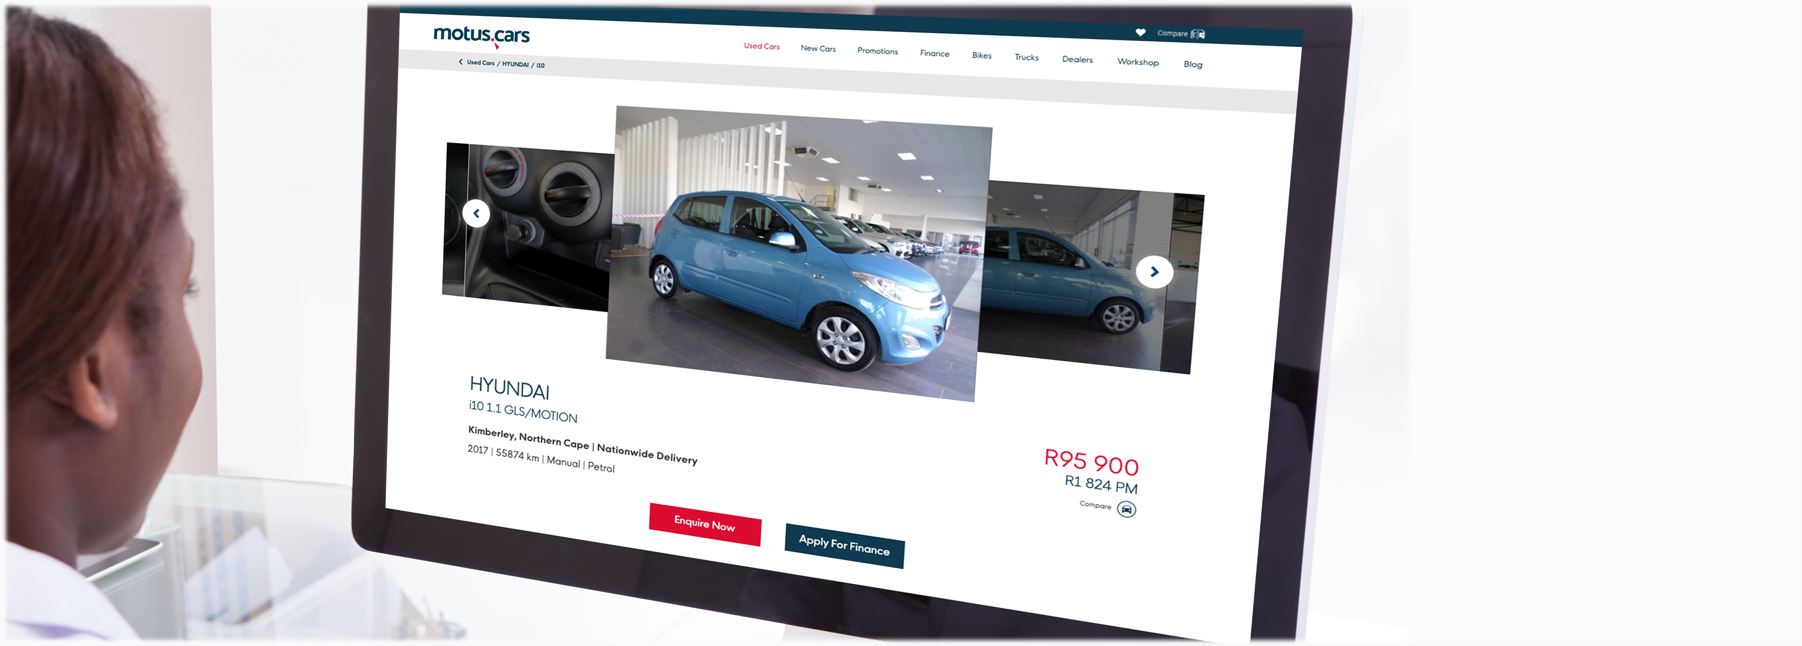 Buy your next car online with motus.cars